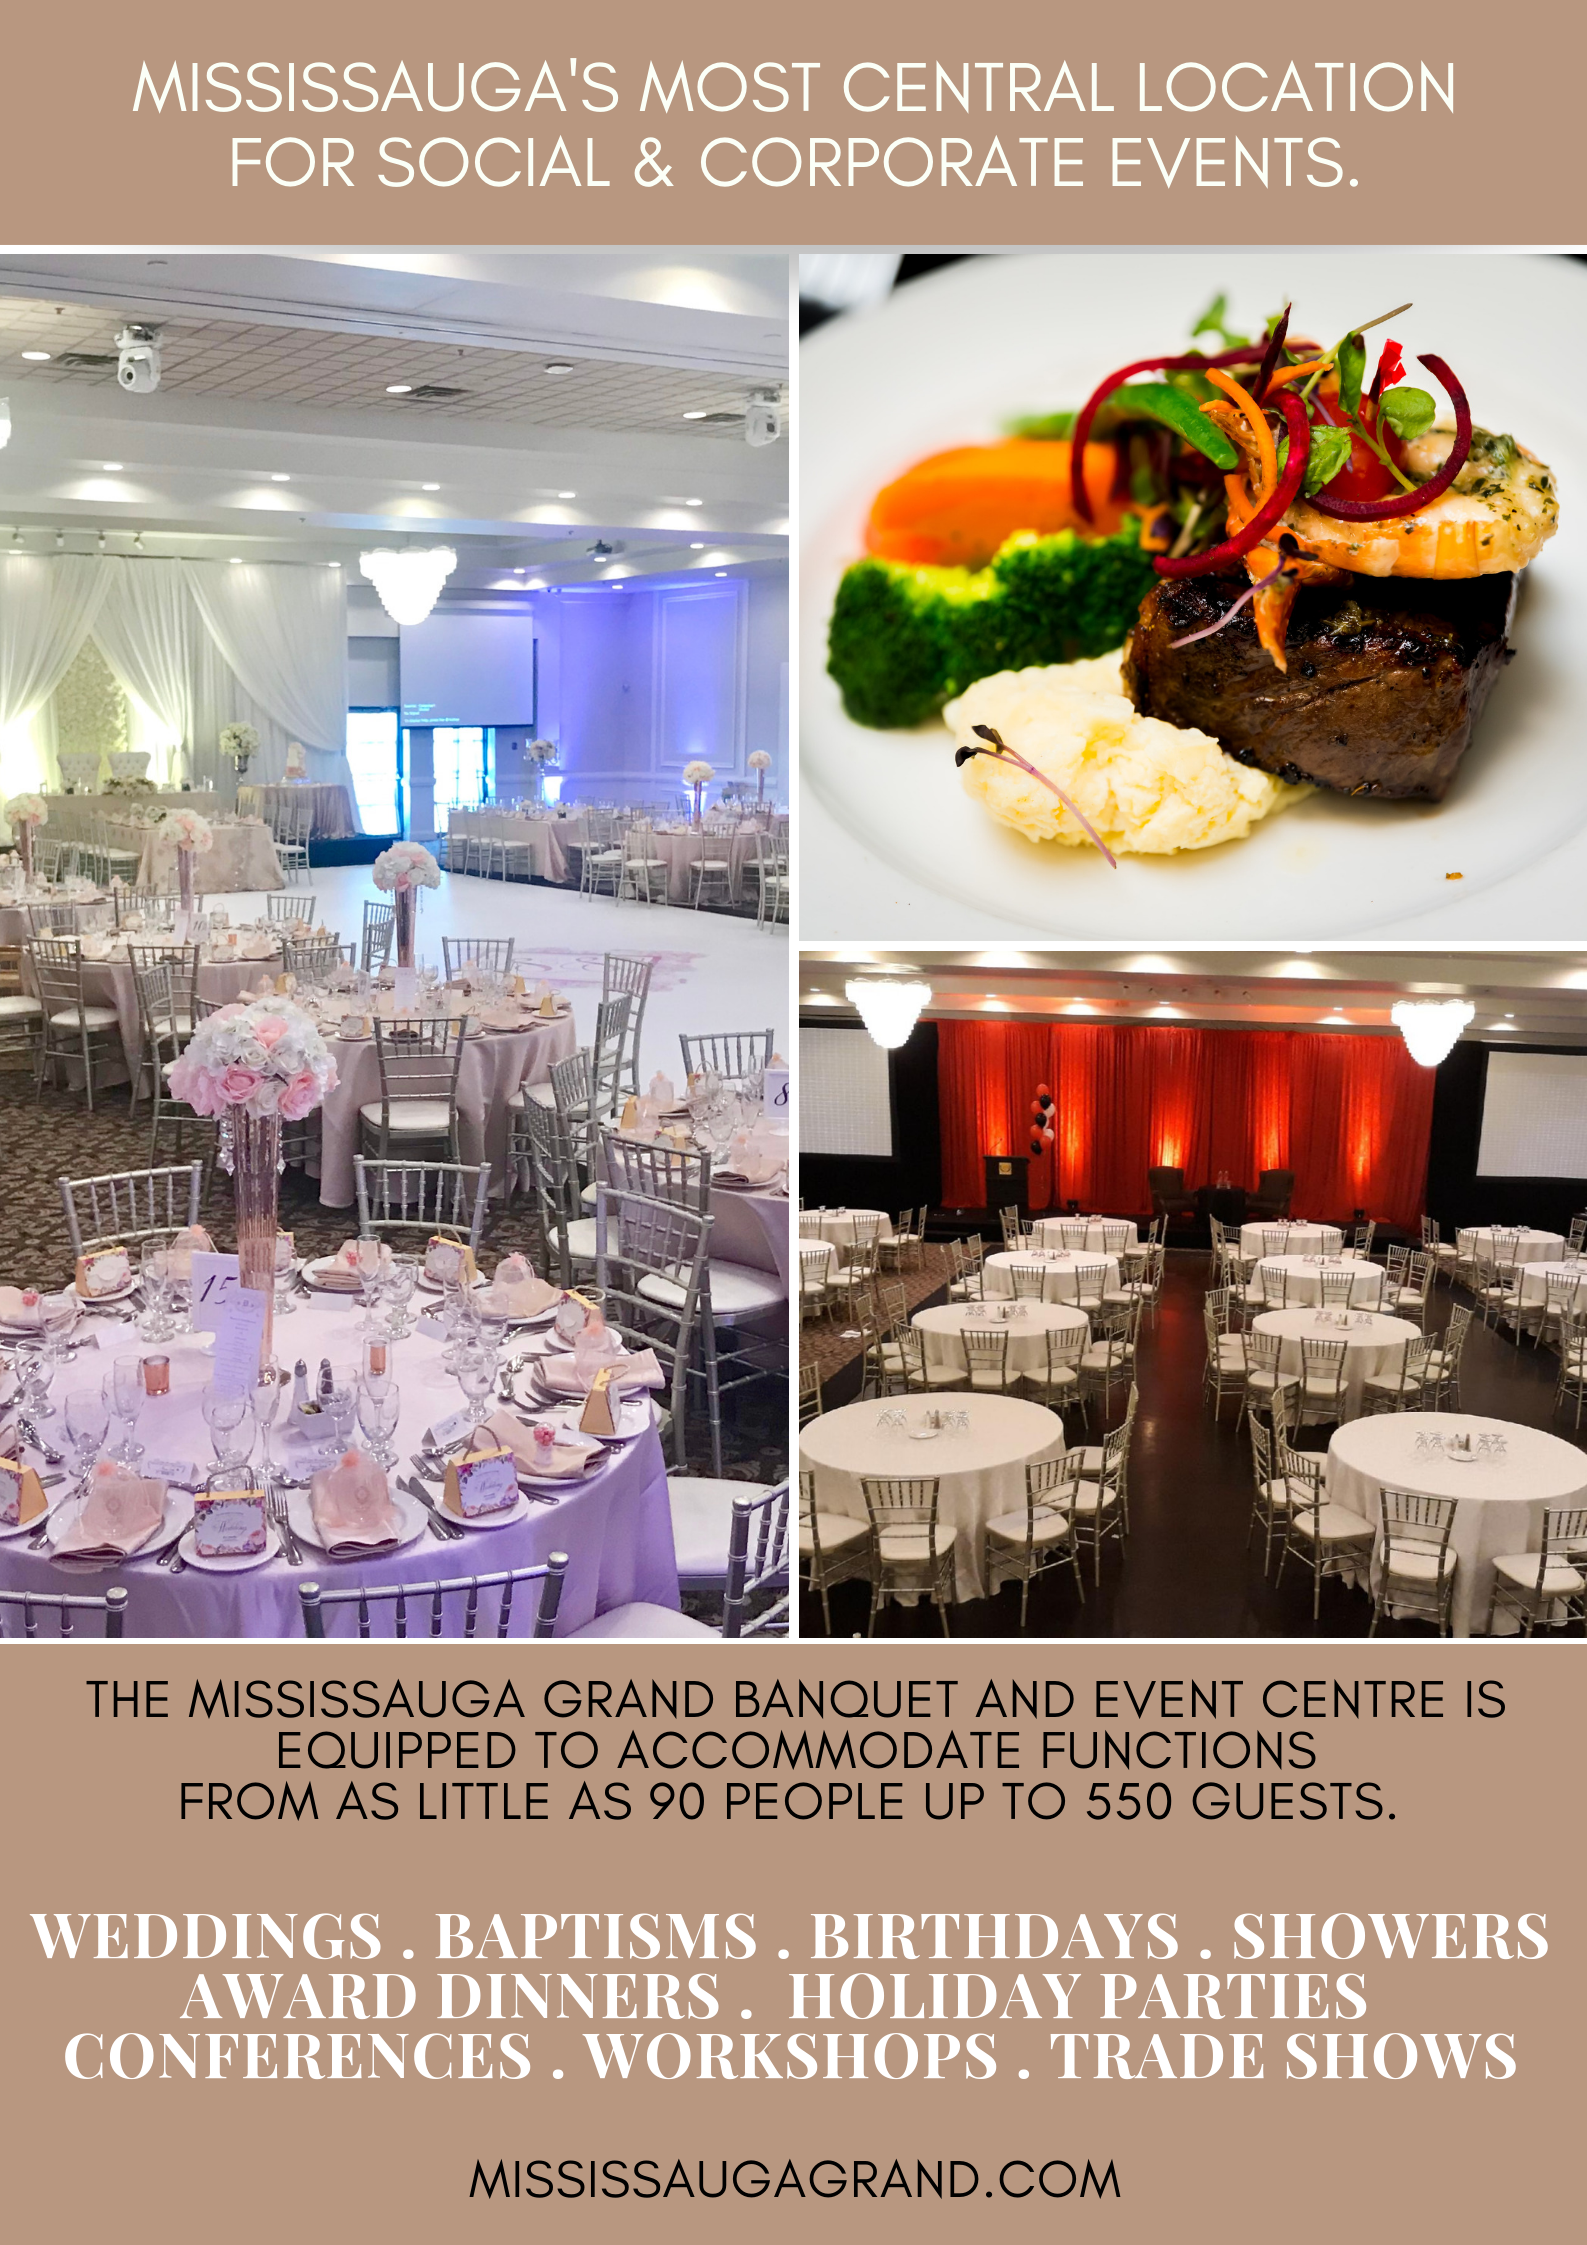 wedding banquet hall, wedding reception venues, small wedding venues, wedding banquet, Mississauga